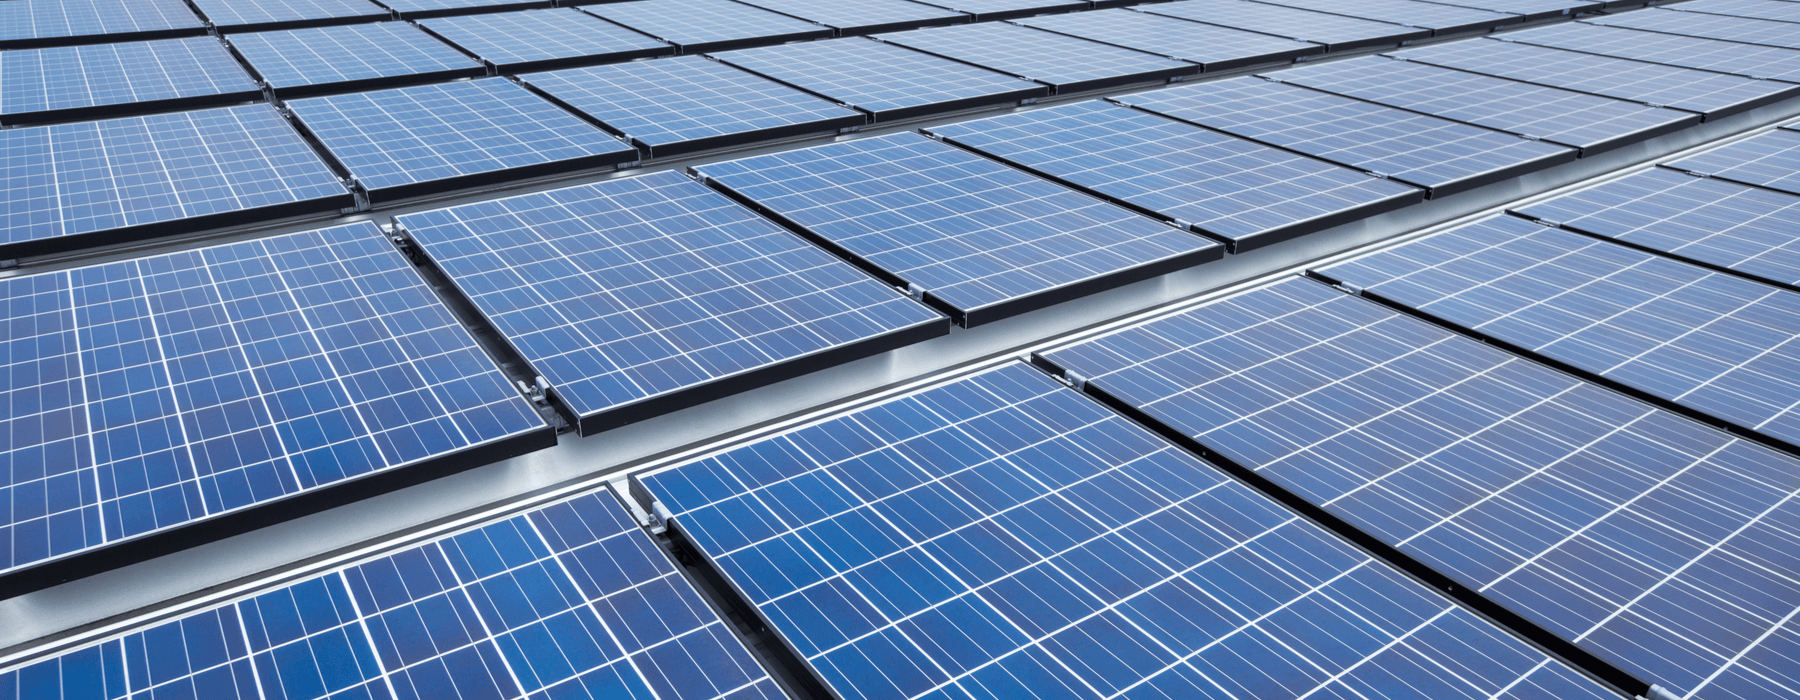 Understanding Solar Panel Efficiency: What Does It Really Mean?